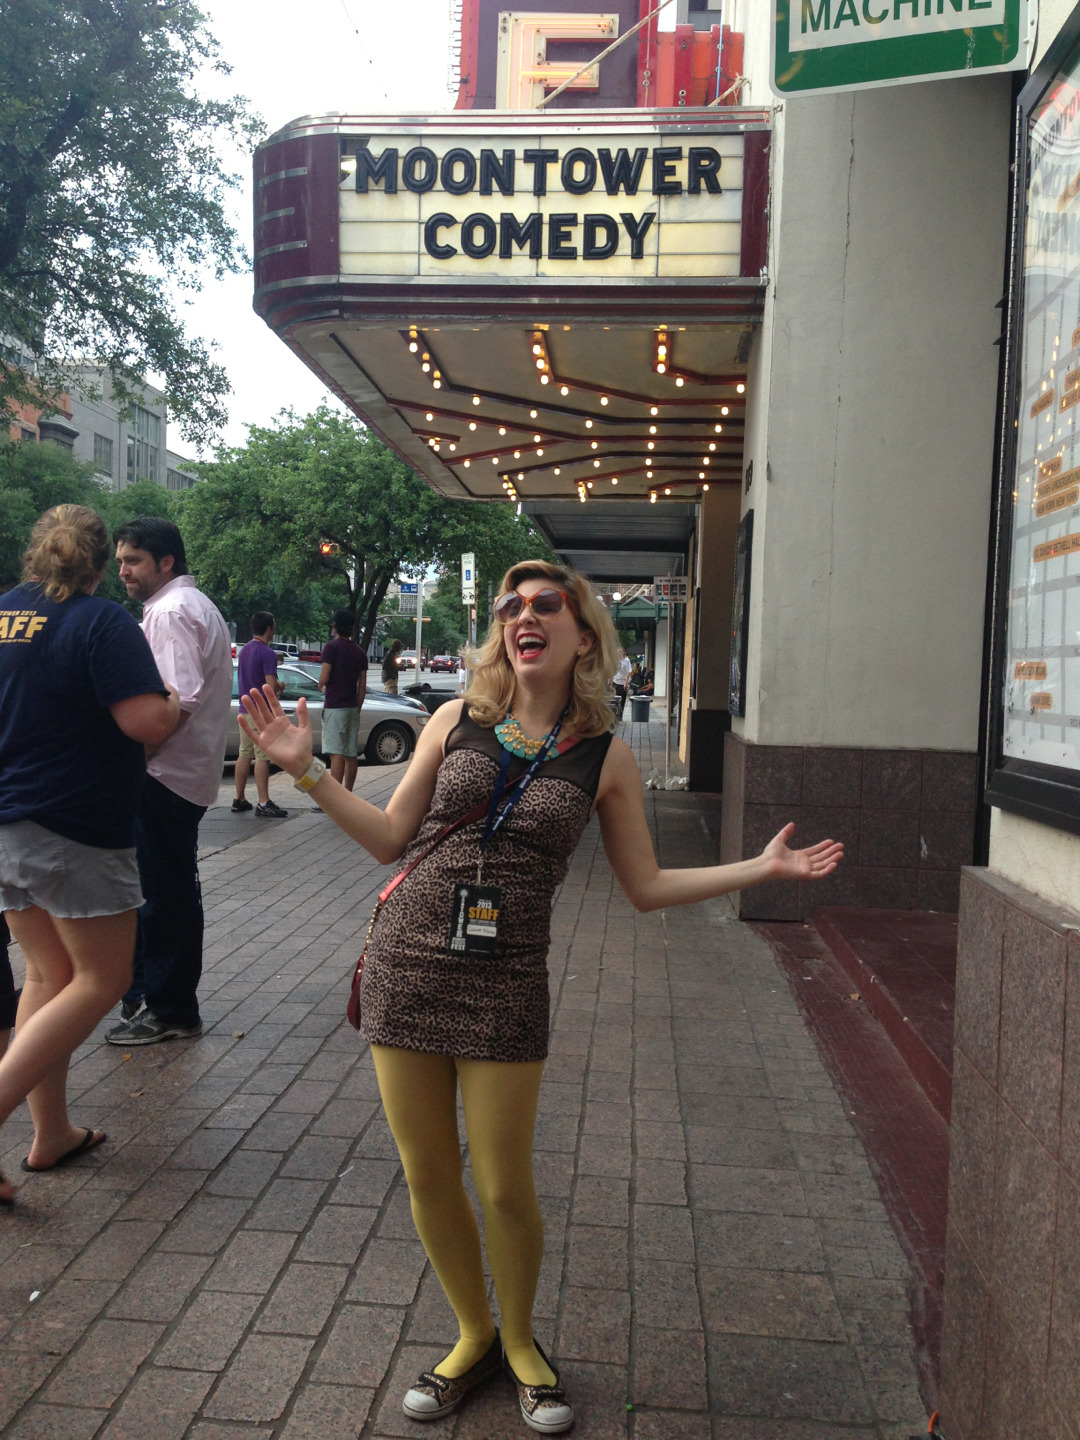 Last day of laughs at @MoontowerComedy.